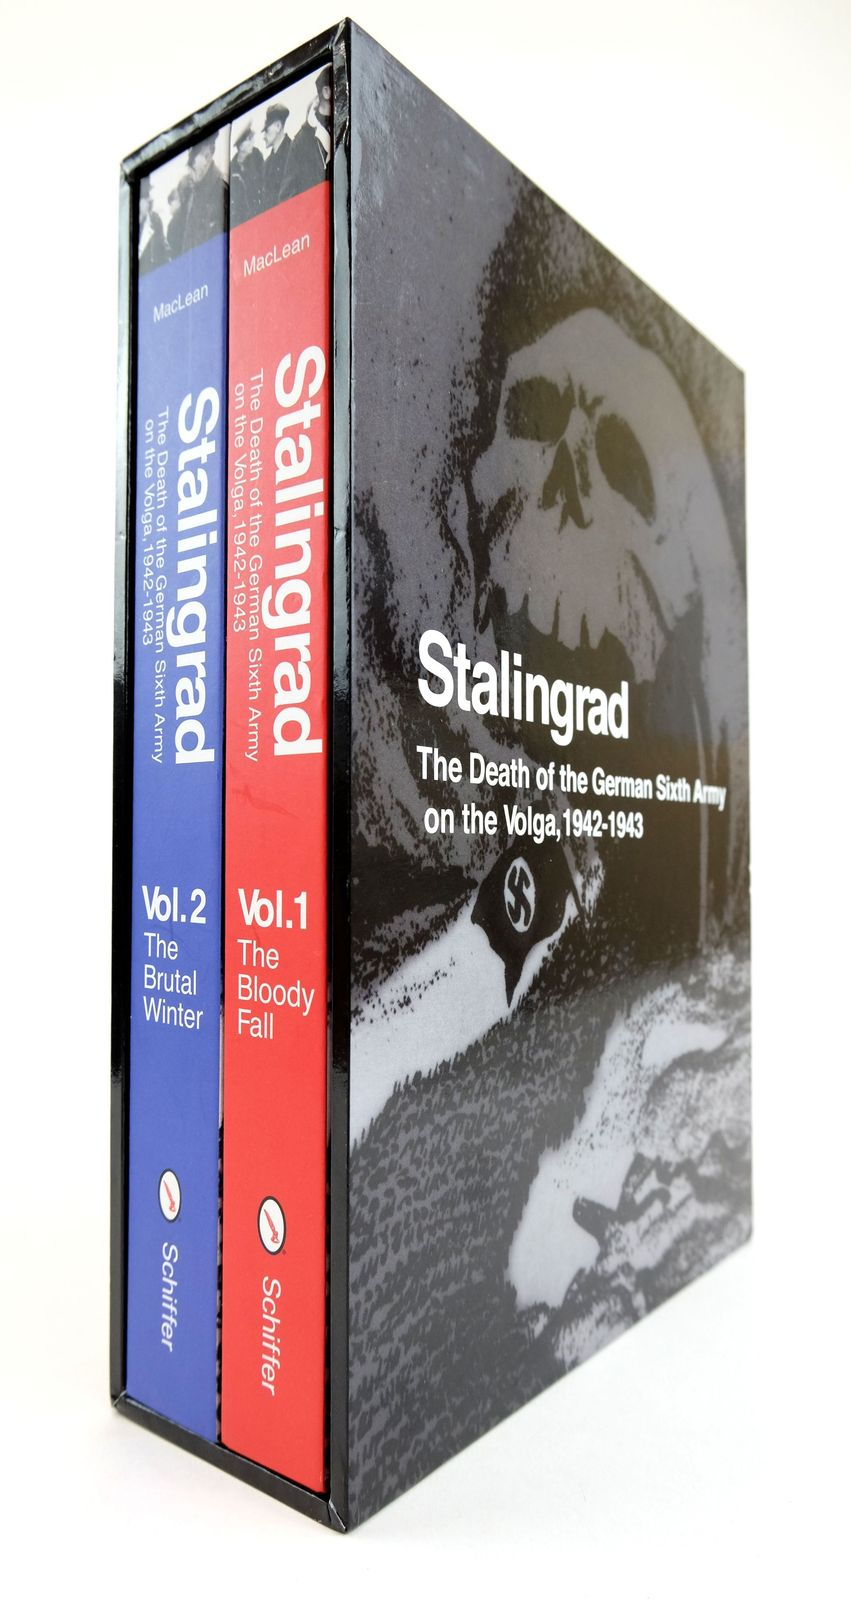 Photo of STALINGRAD: THE DEATH OF THE GERMAN SIXTH ARMY ON THE VOLGA, 1942-1943 (2 VOLUMES) written by MacLean, French L. published by Schiffer Publishing Ltd. (STOCK CODE: 1818891)  for sale by Stella & Rose's Books